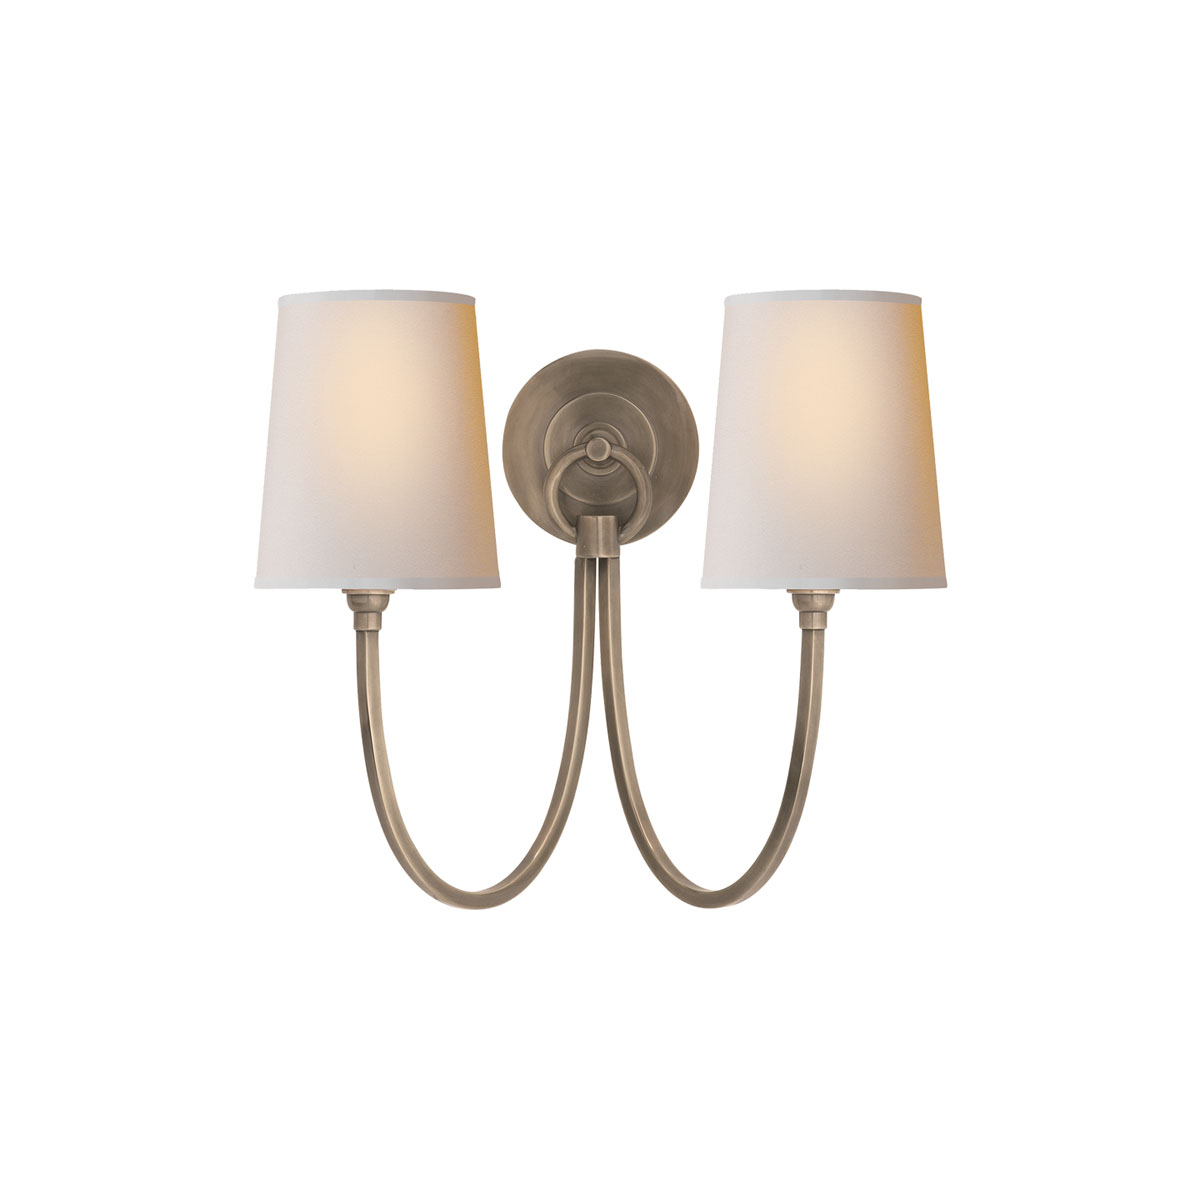 over portland comfort maine ring sconces sconce a pin used form visual console table wall